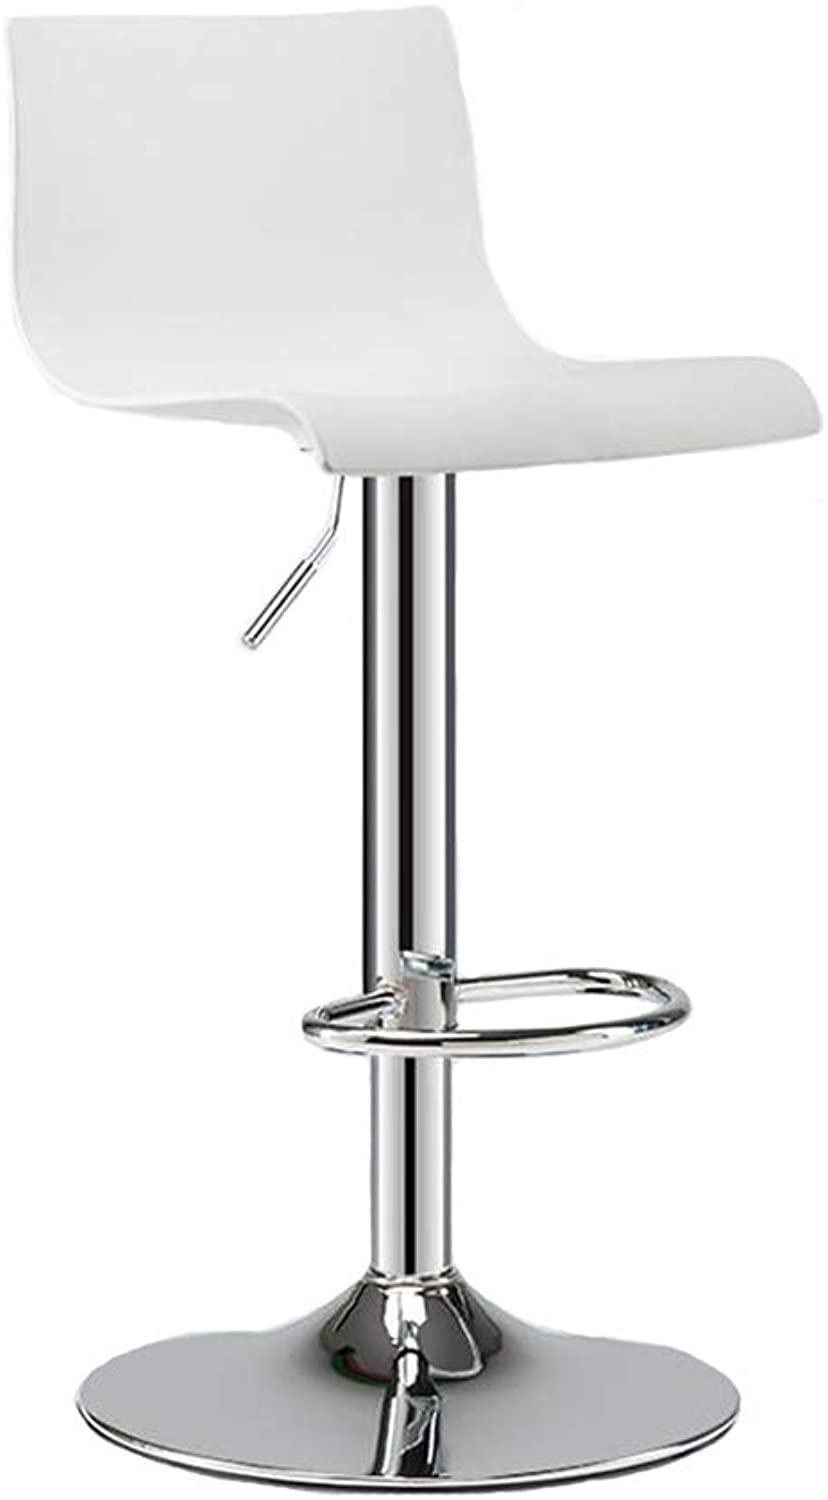 Dall Bar Stools Modern Gas Lift Swivel Dinning Chairs Bar Stools Height Adjustable (color   T4)